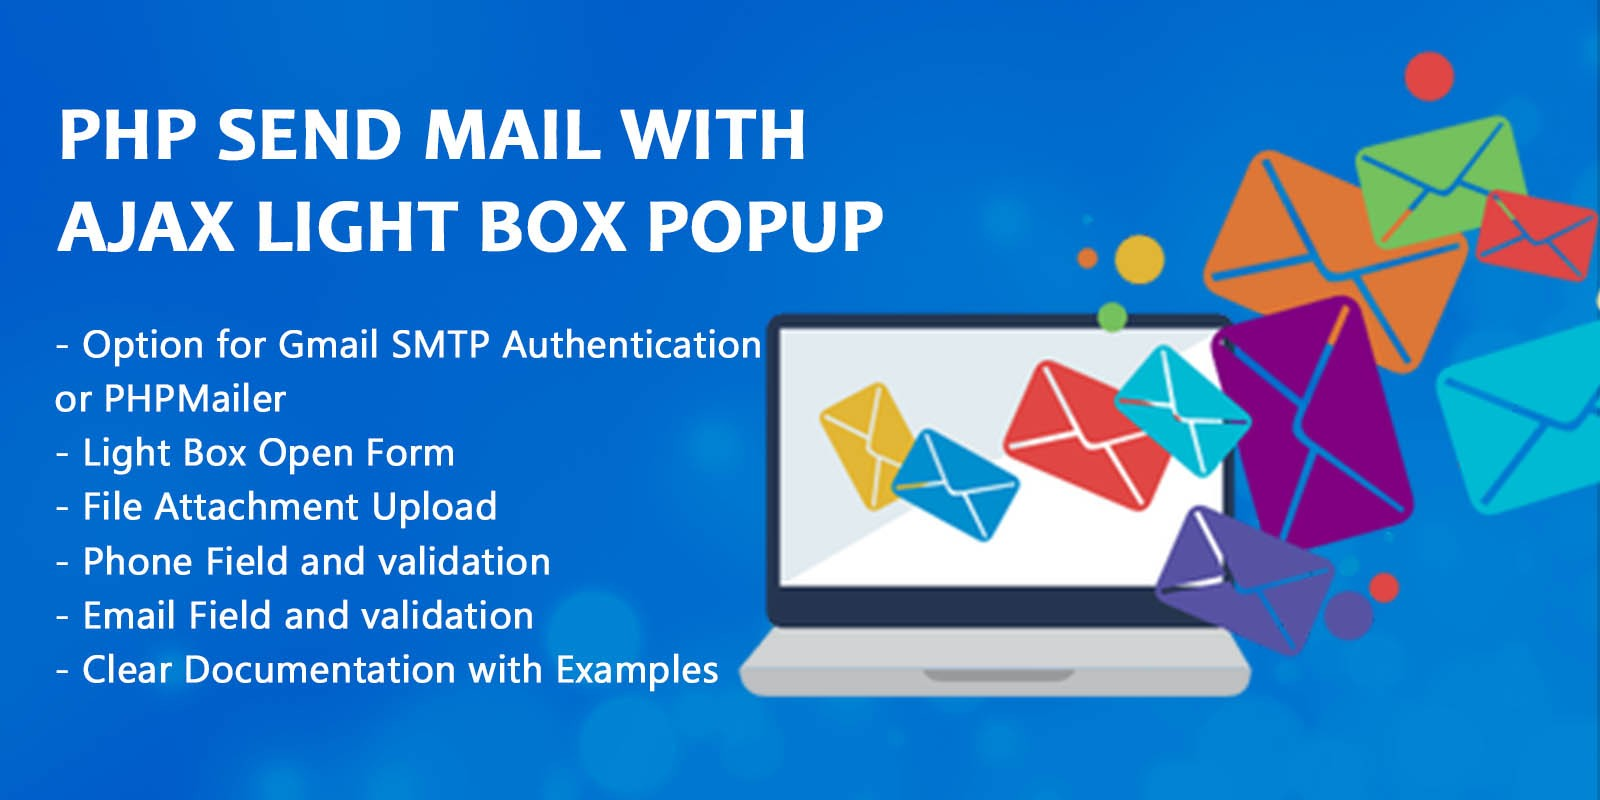 Php Send Mail With Ajax Light Box Popup